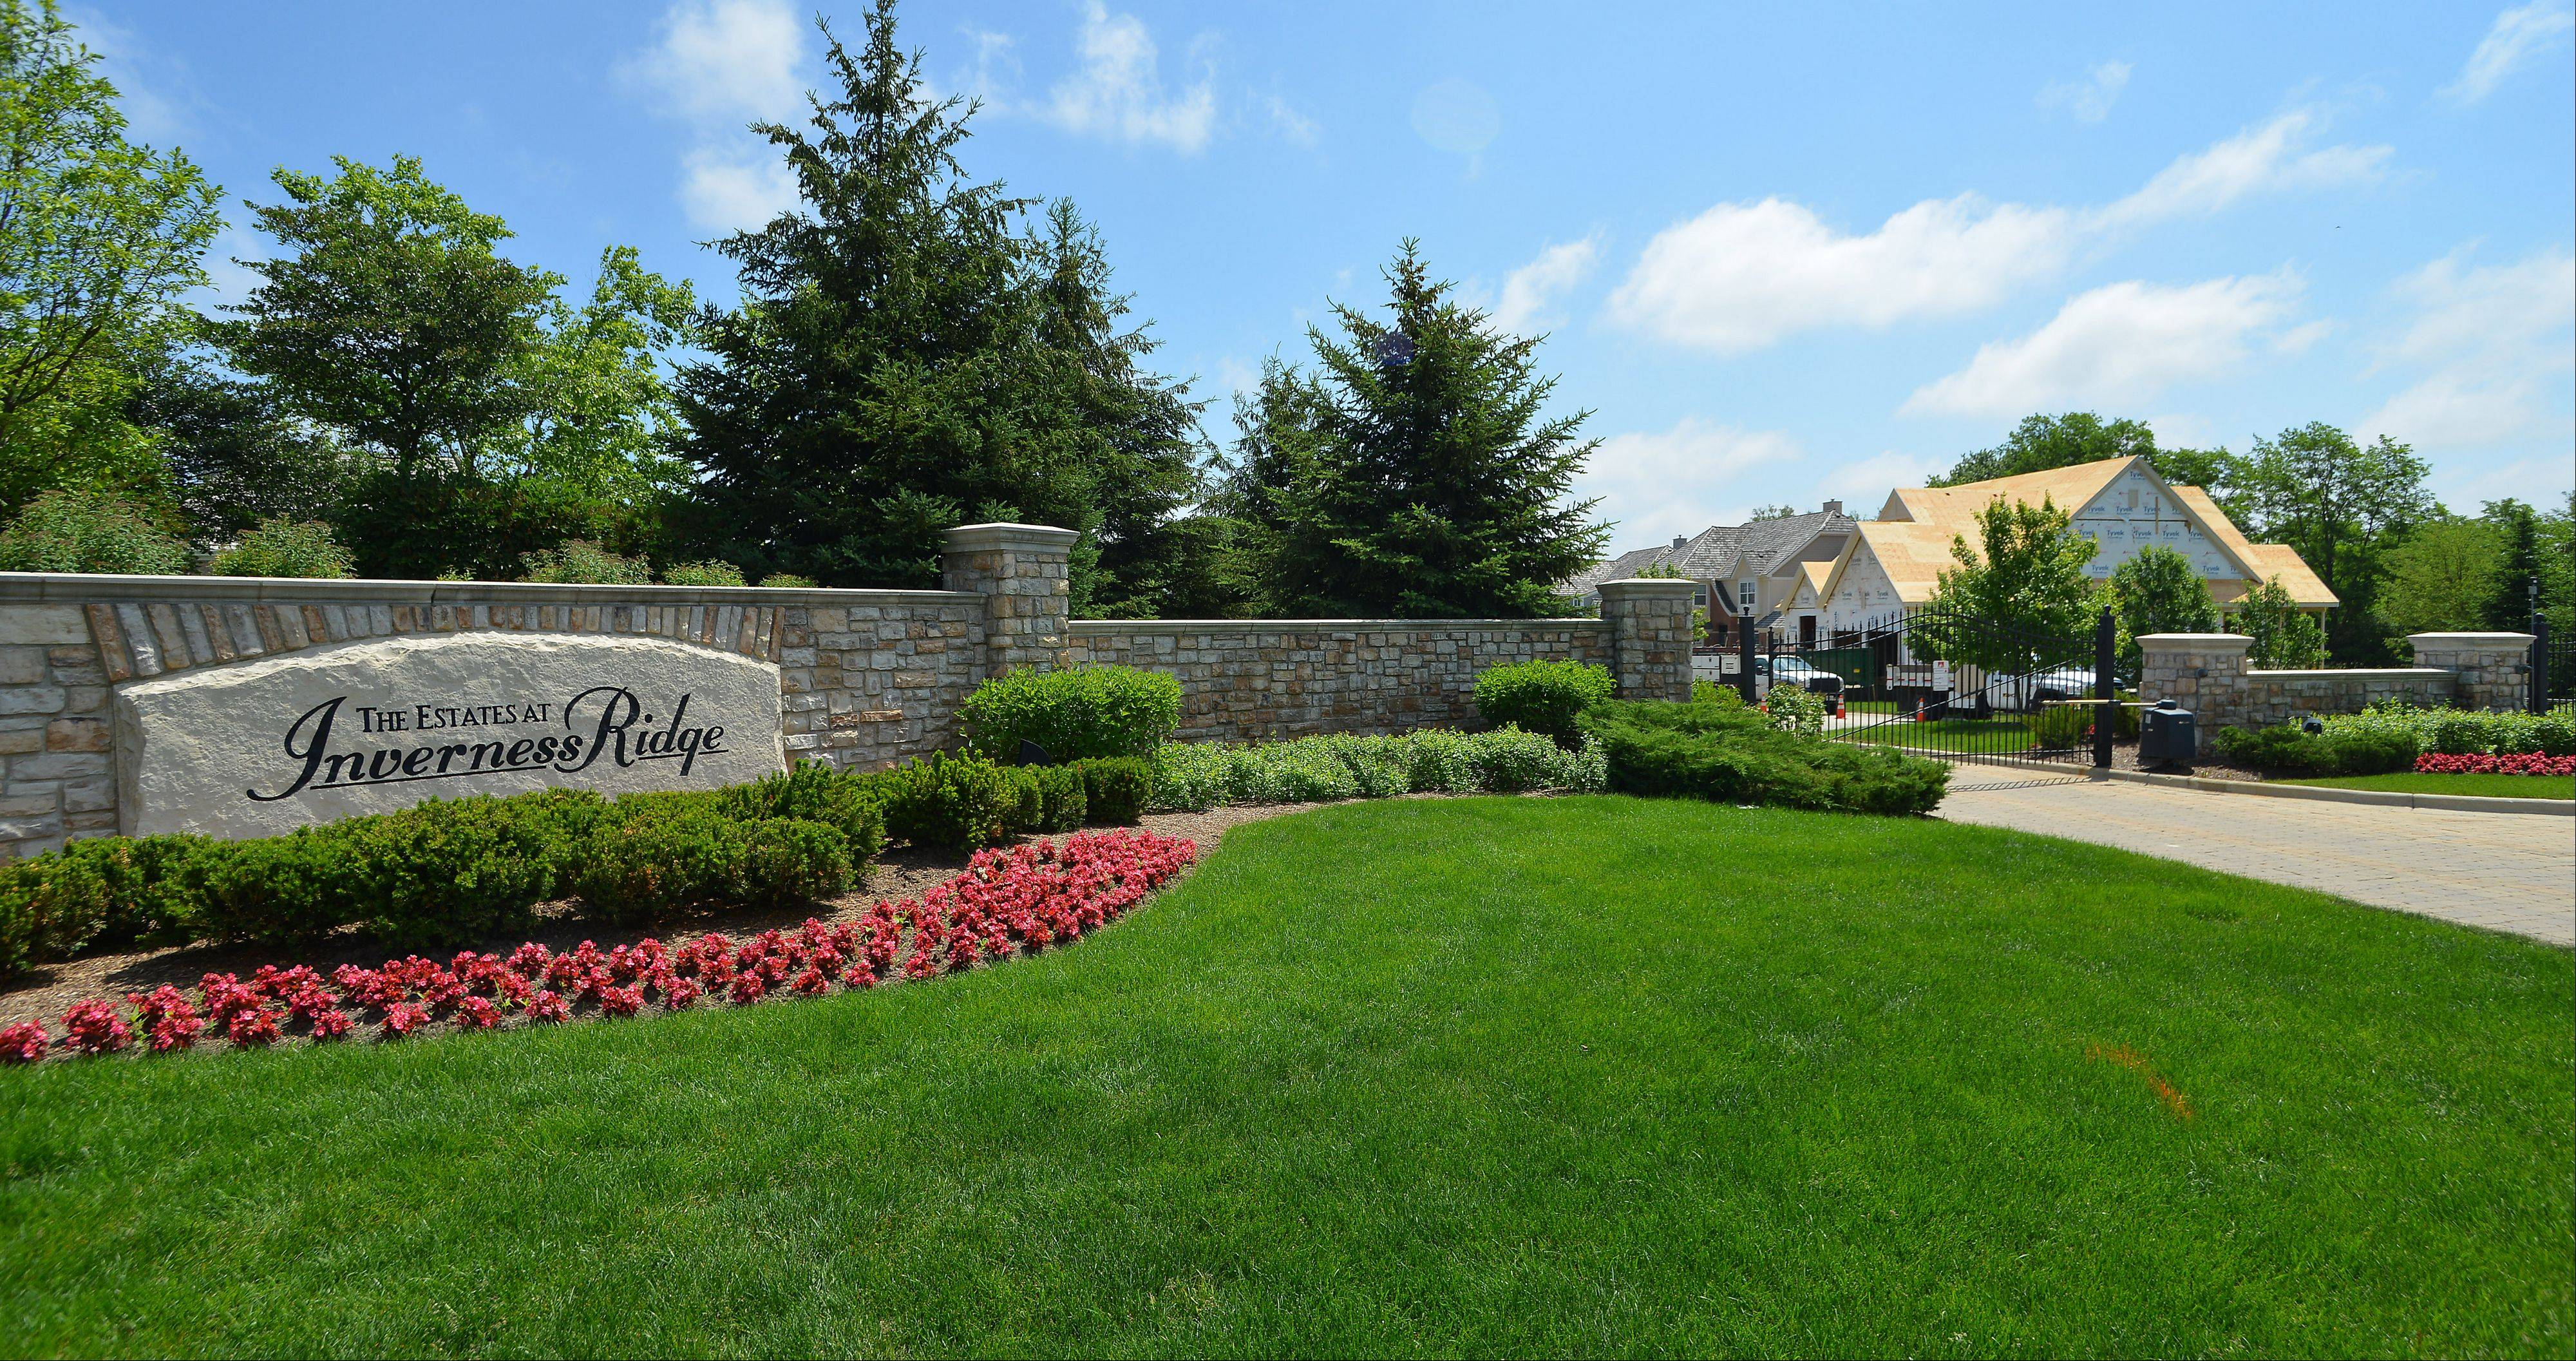 Creekside at Inverness Ridge in Inverness was developed in the mid-2000s by Deerfield-based Meritus Homes.